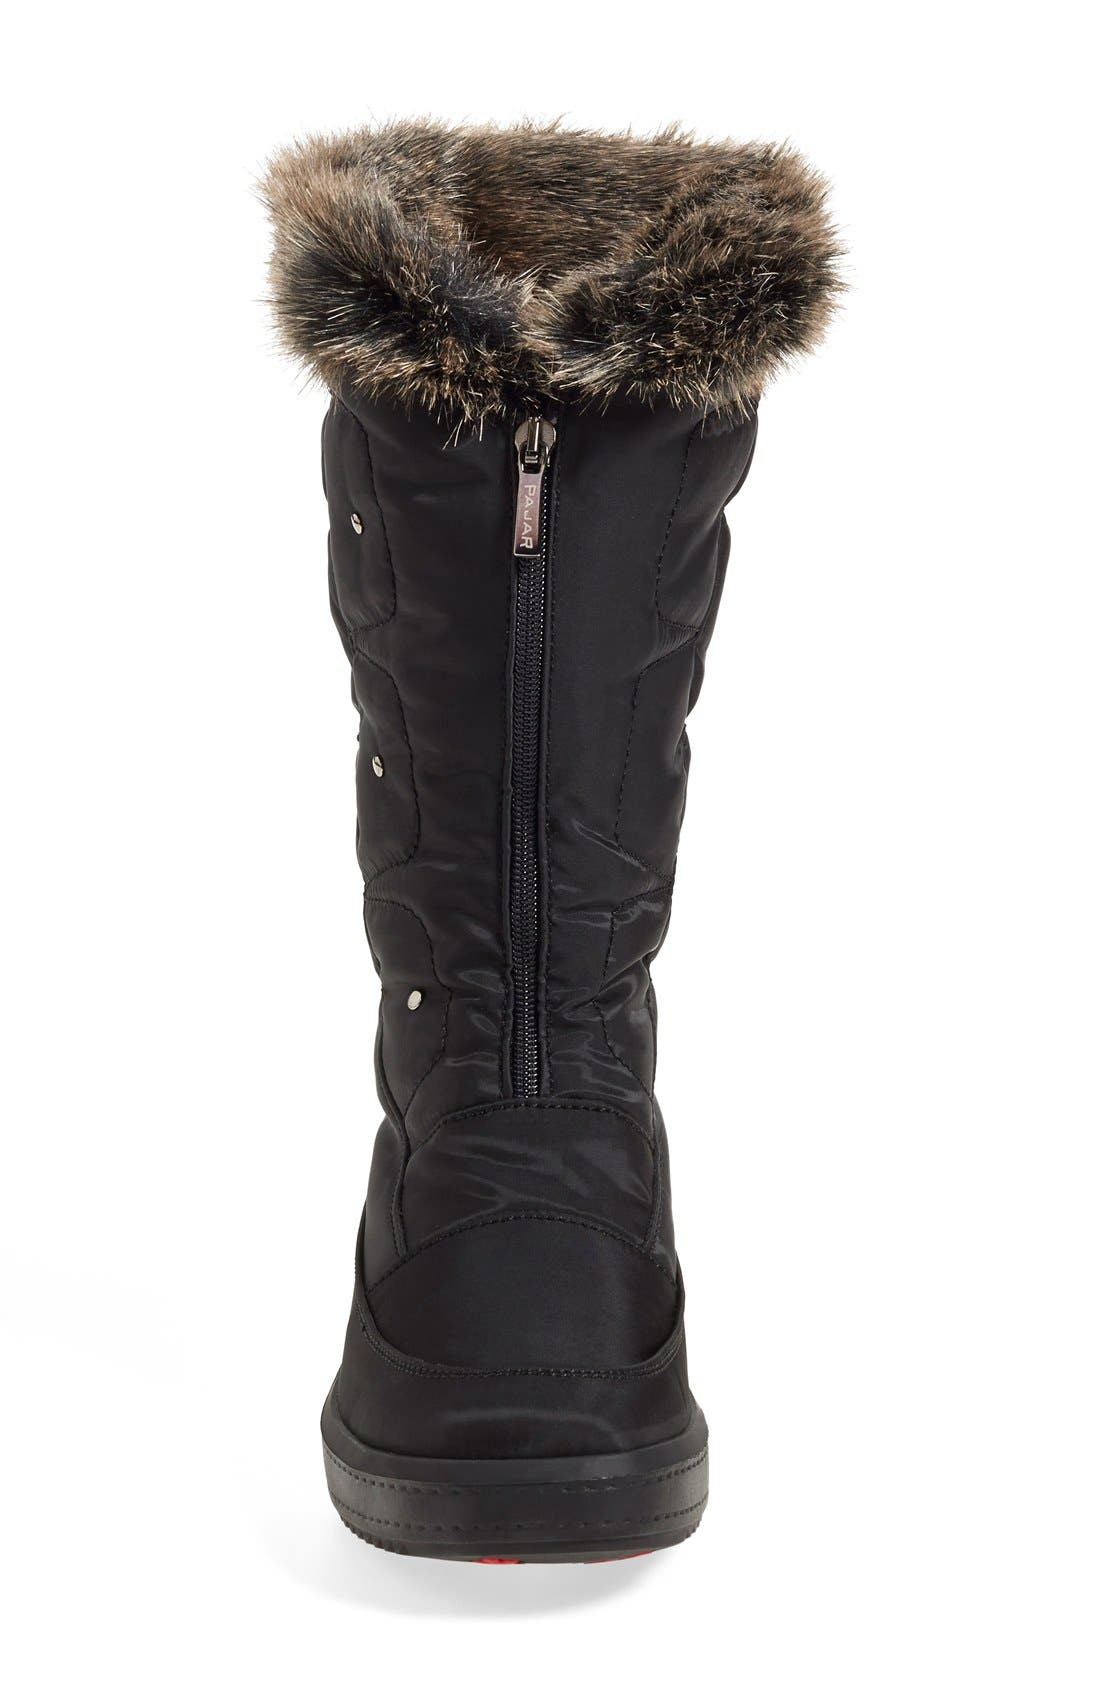 'Louise' Weatherproof Boot,                             Alternate thumbnail 3, color,                             Black Fabric